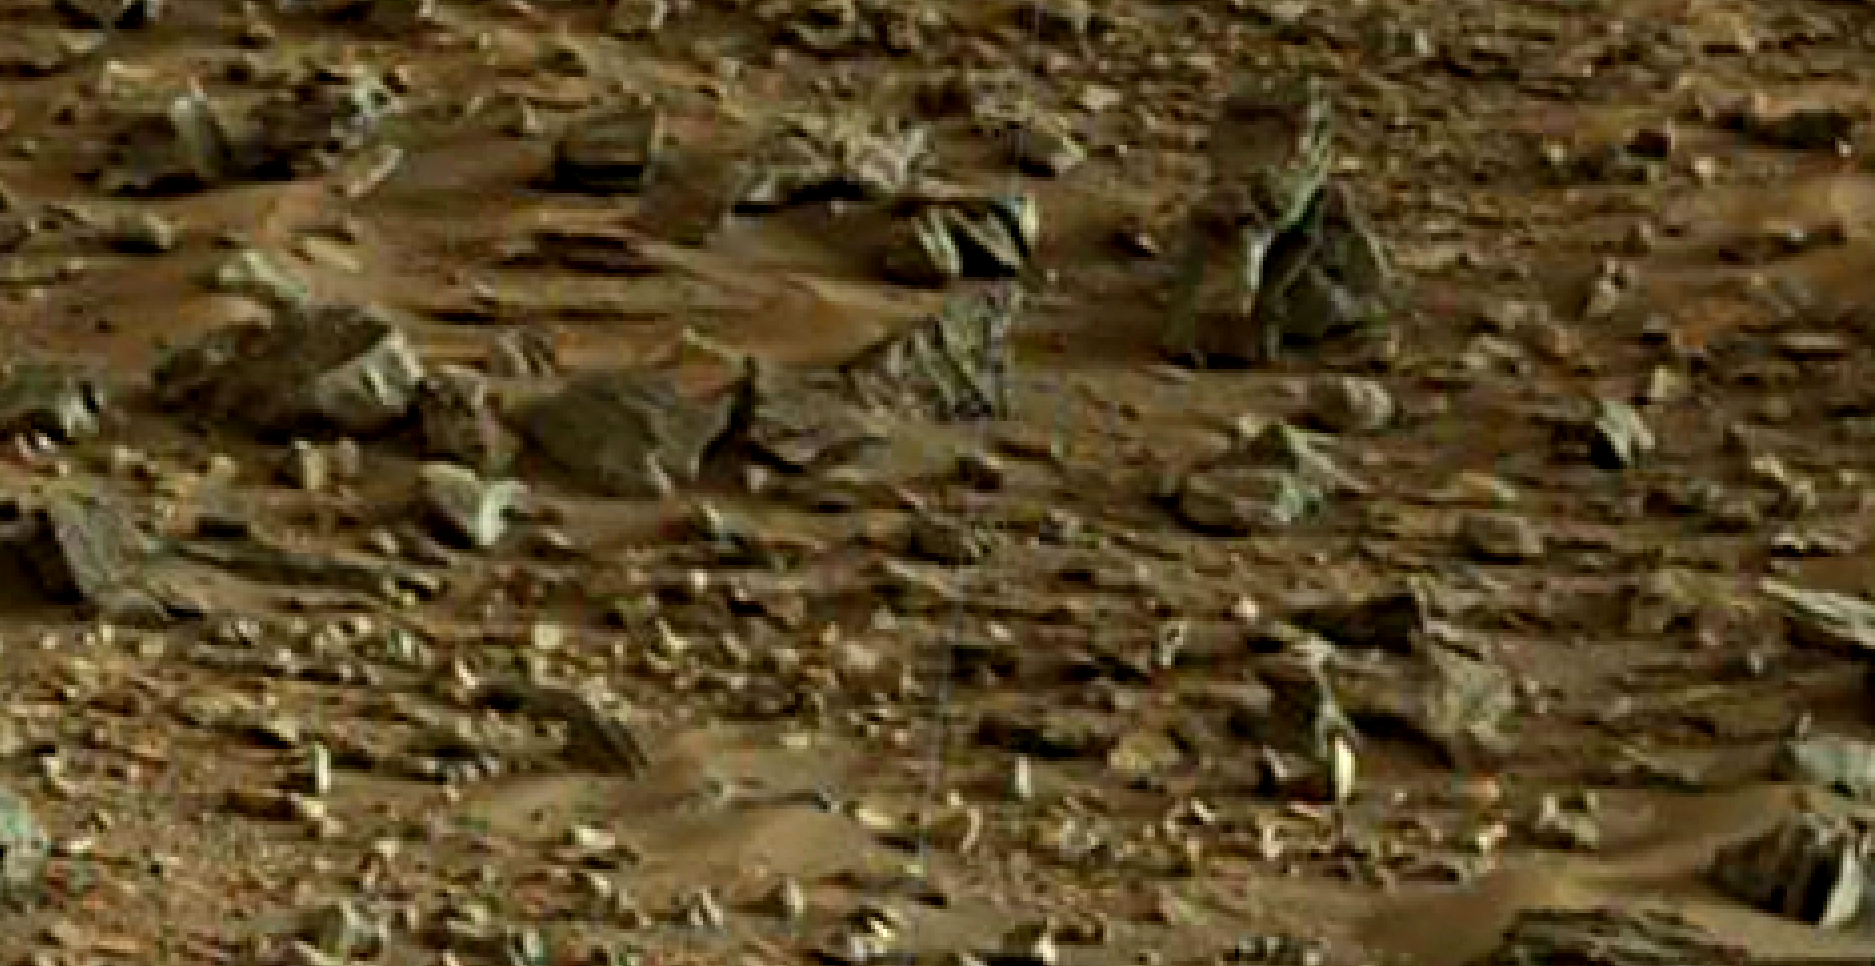 mars-sol-1448-anomaly-artifacts-23-was-life-on-mars